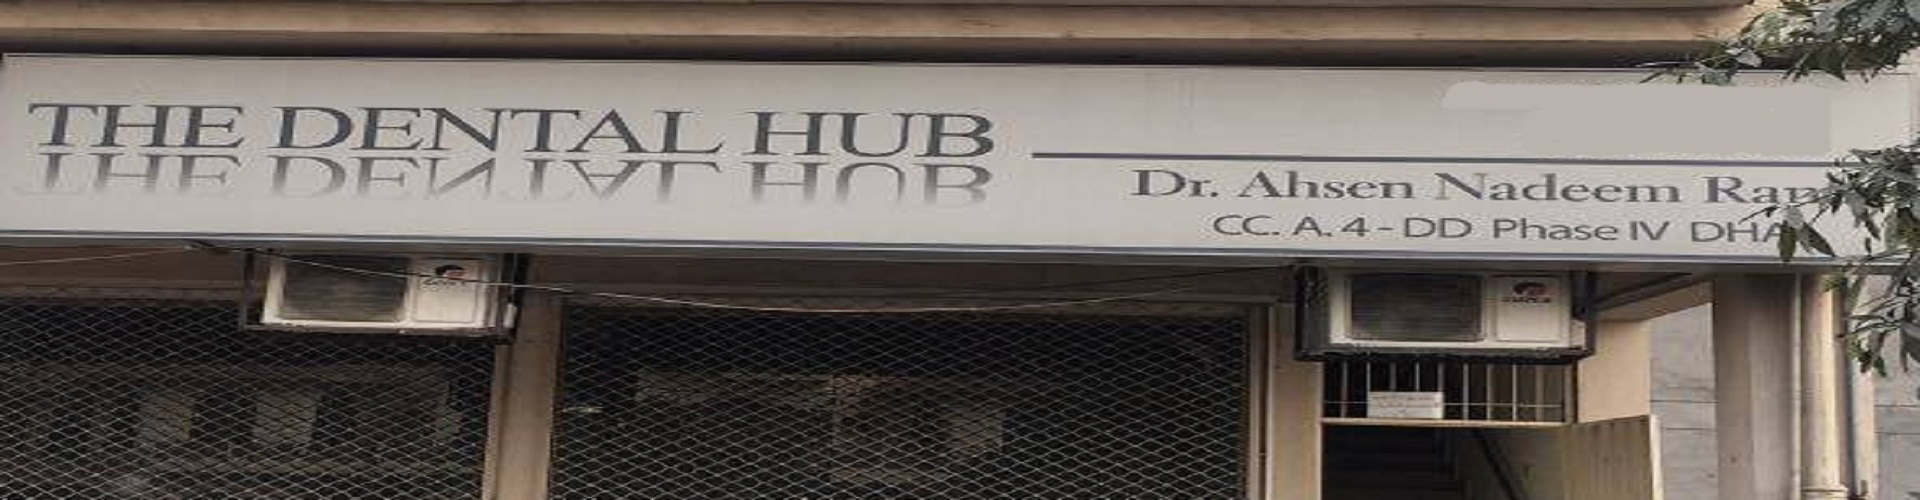 The dental hub front